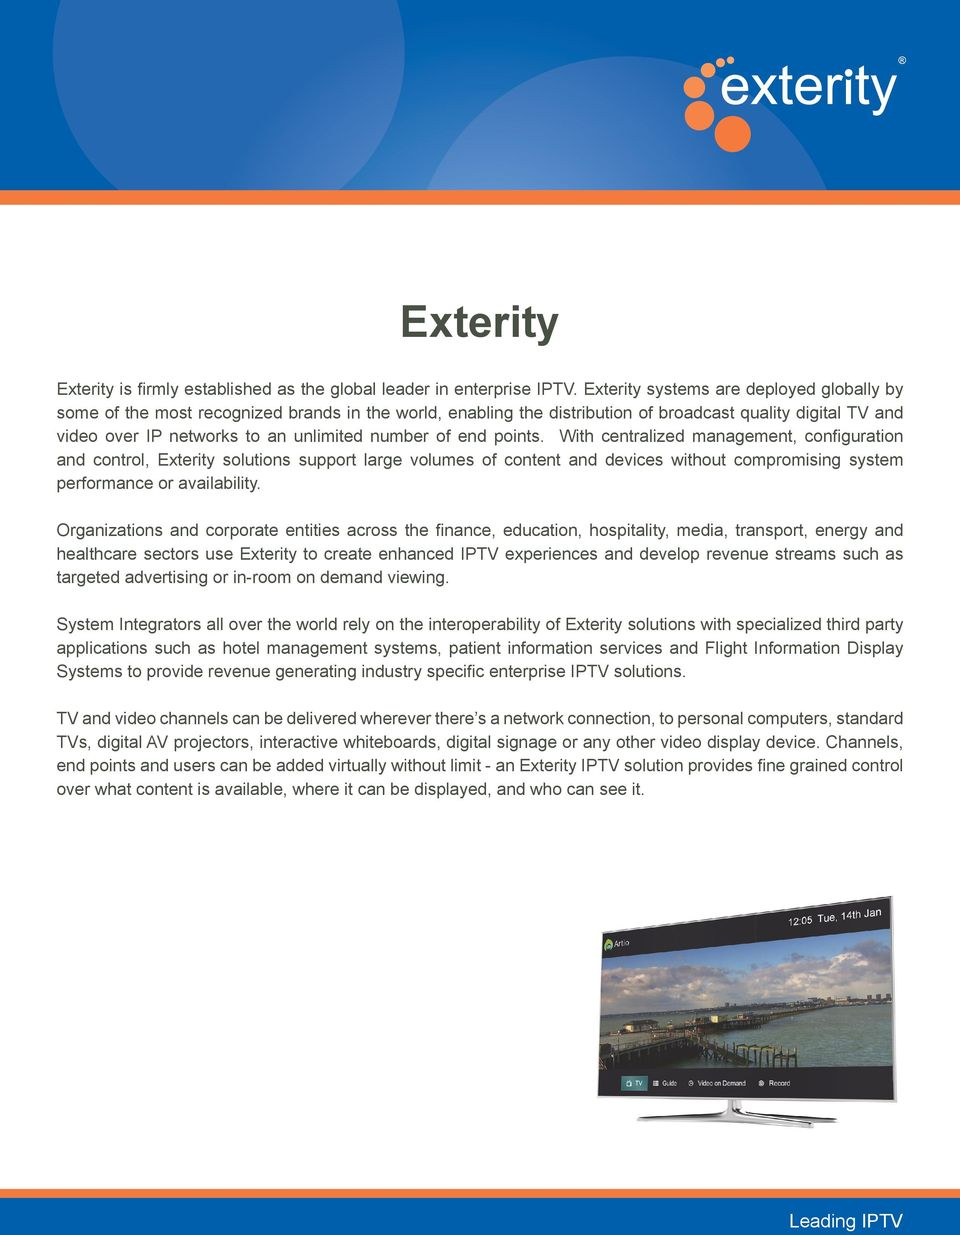 of end points. With centralized management, configuration and control, Exterity solutions support large volumes of content and devices without compromising system performance or availability.